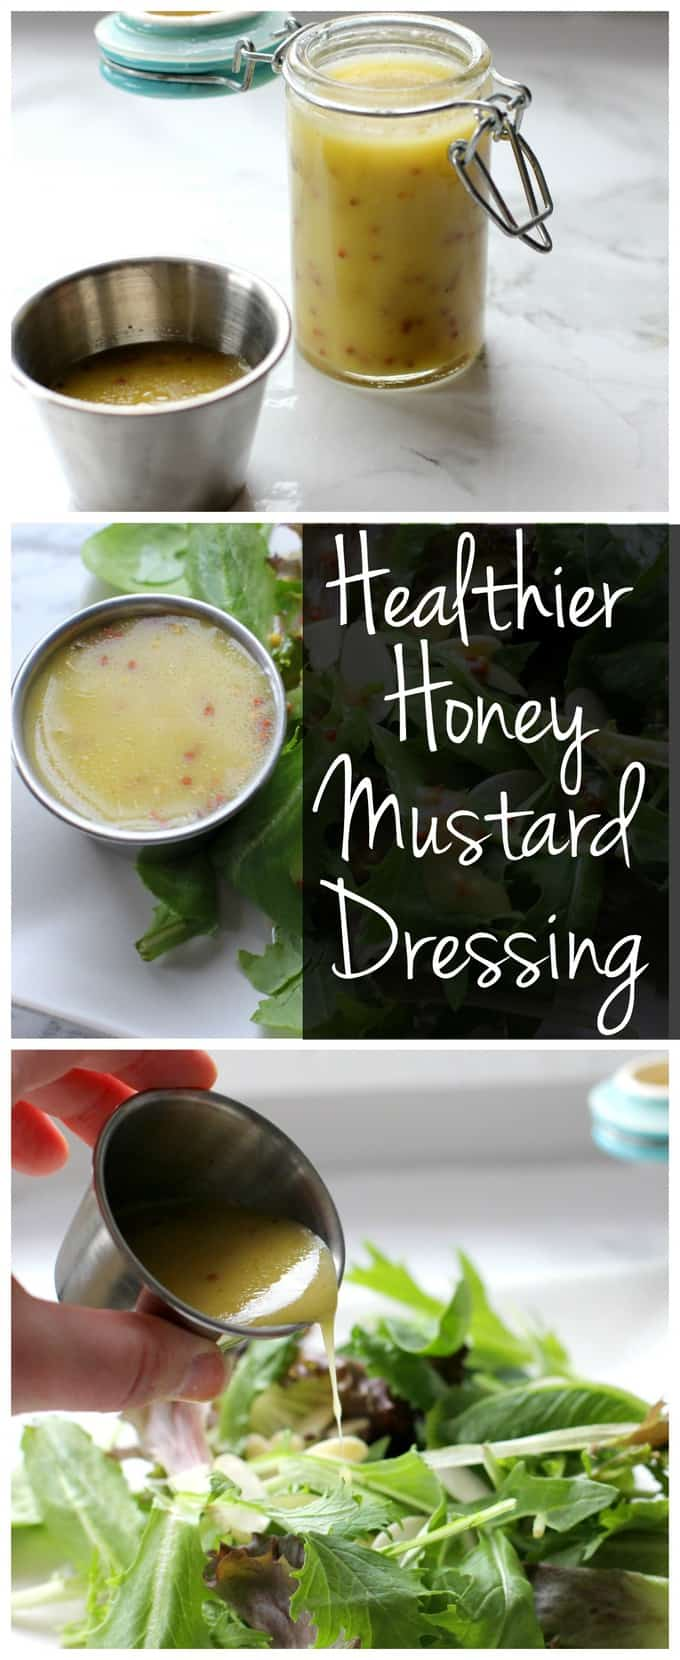 Healthier Honey Mustard Dressing